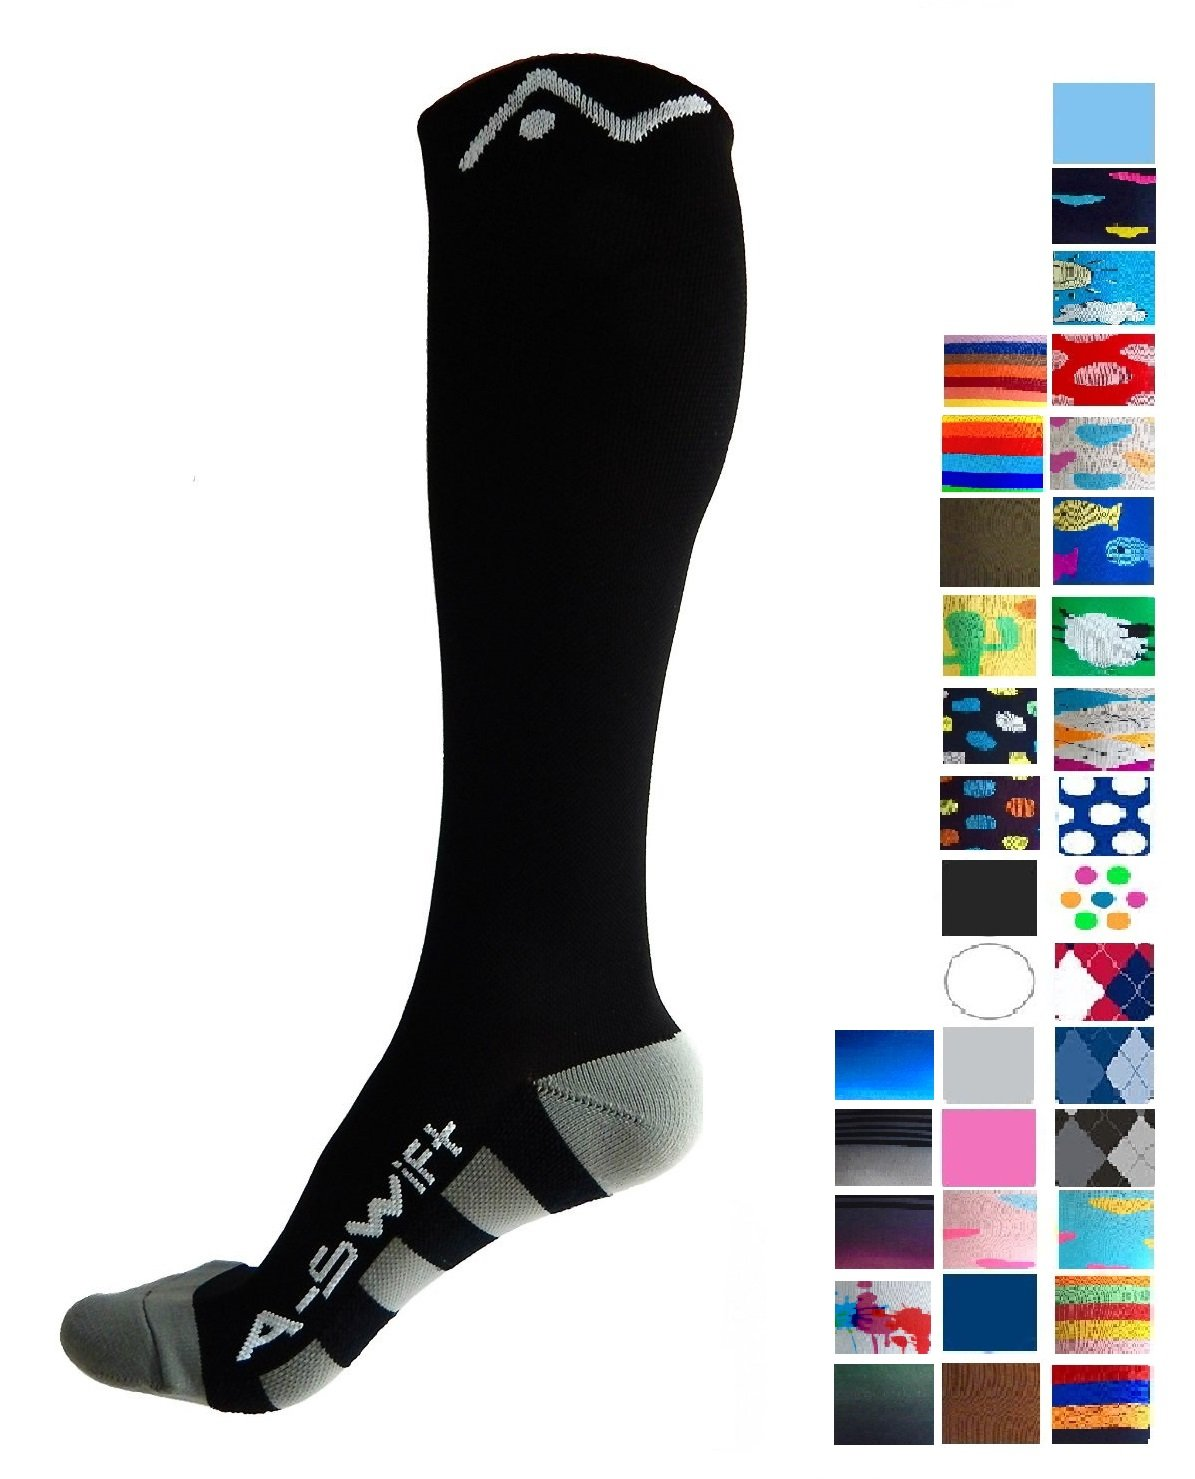 A-Swift Compression Socks for Women and Men - Black, Large